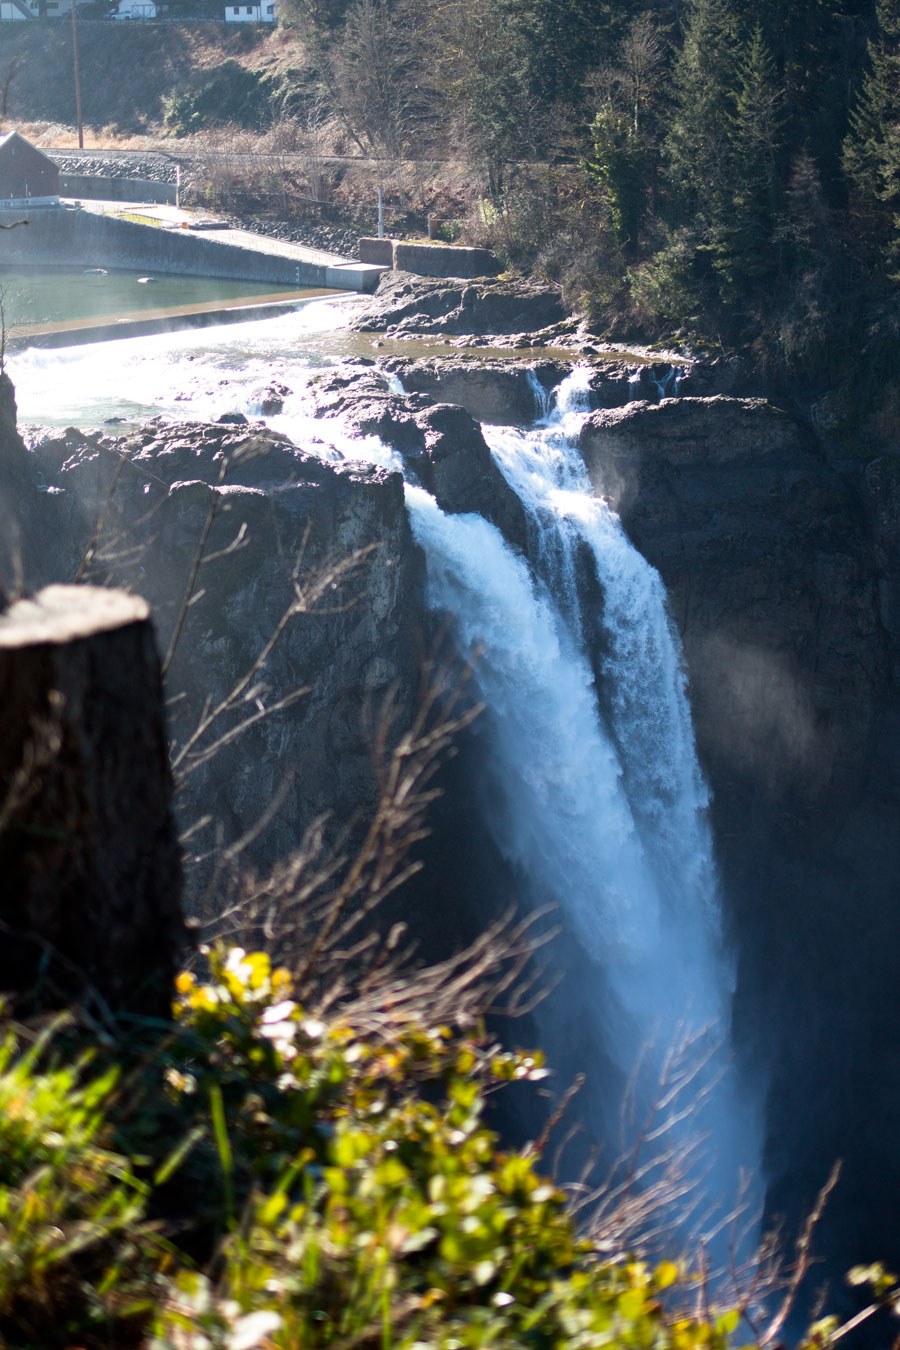 Salish Lodge Snoqualmie Falls View / hellorigby seattle travel blog